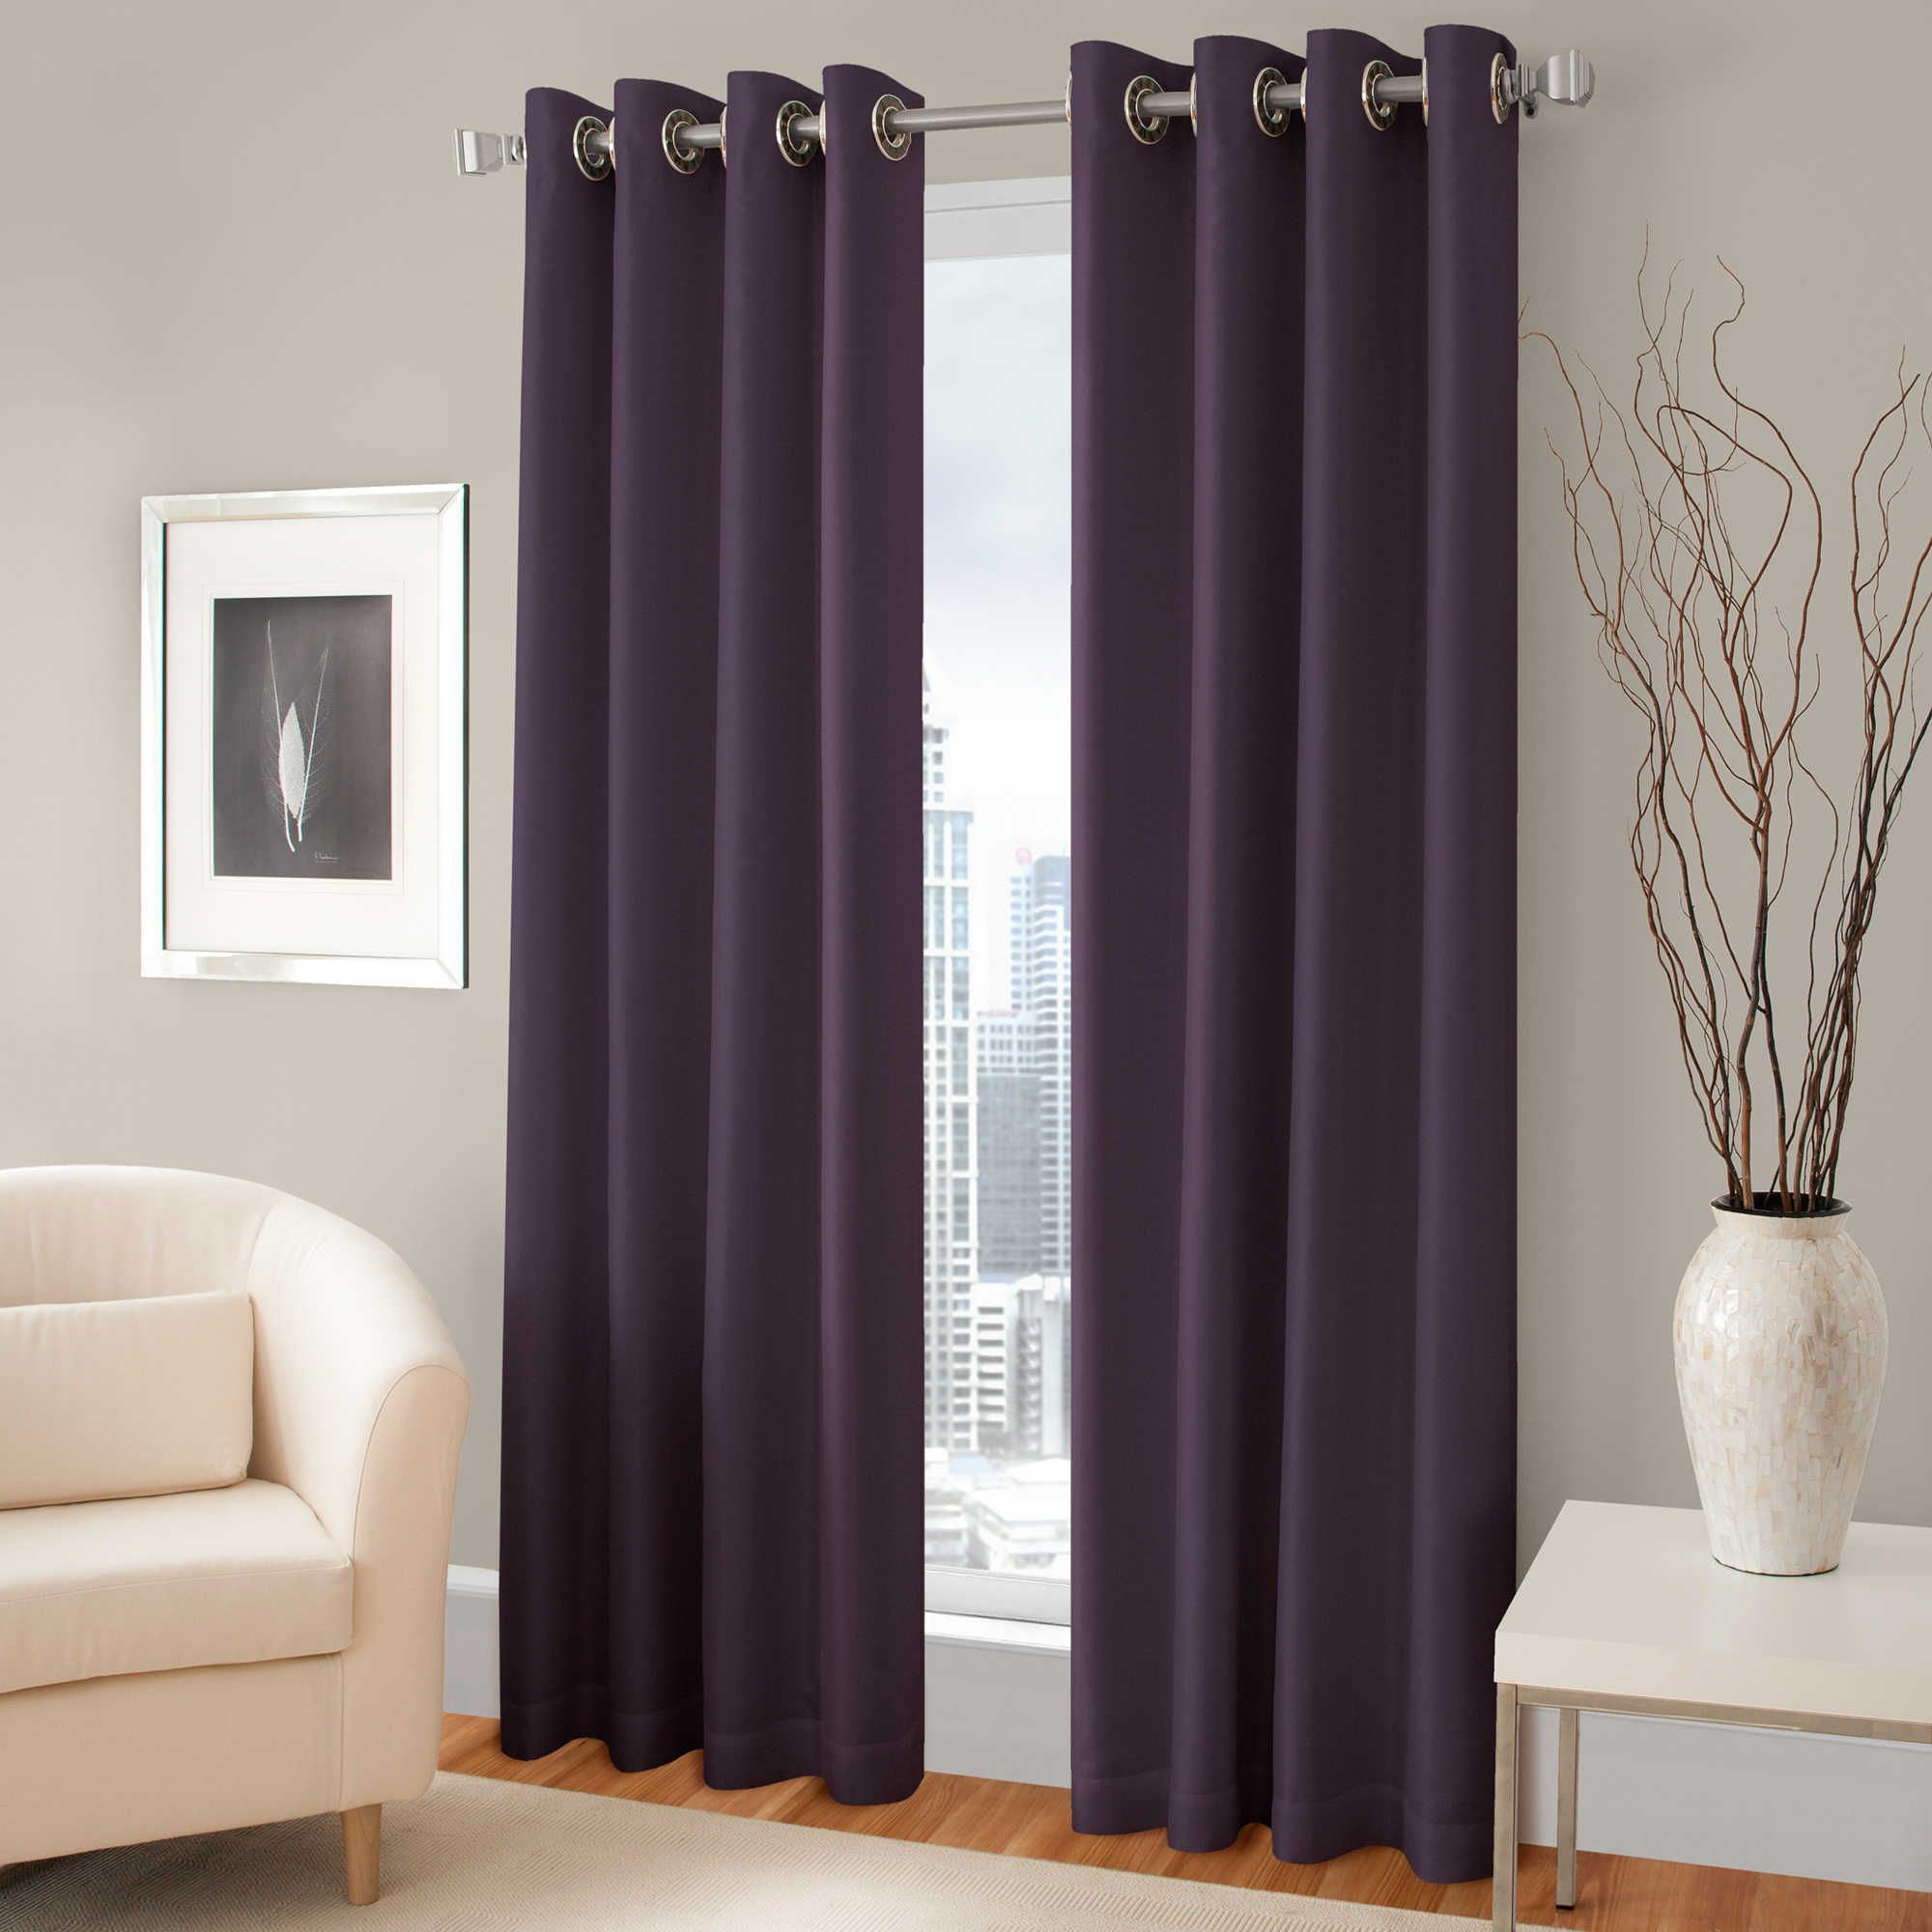 Curtains For Grey Walls Pretty Purple Room Darkening Curtains With Silver Rods On